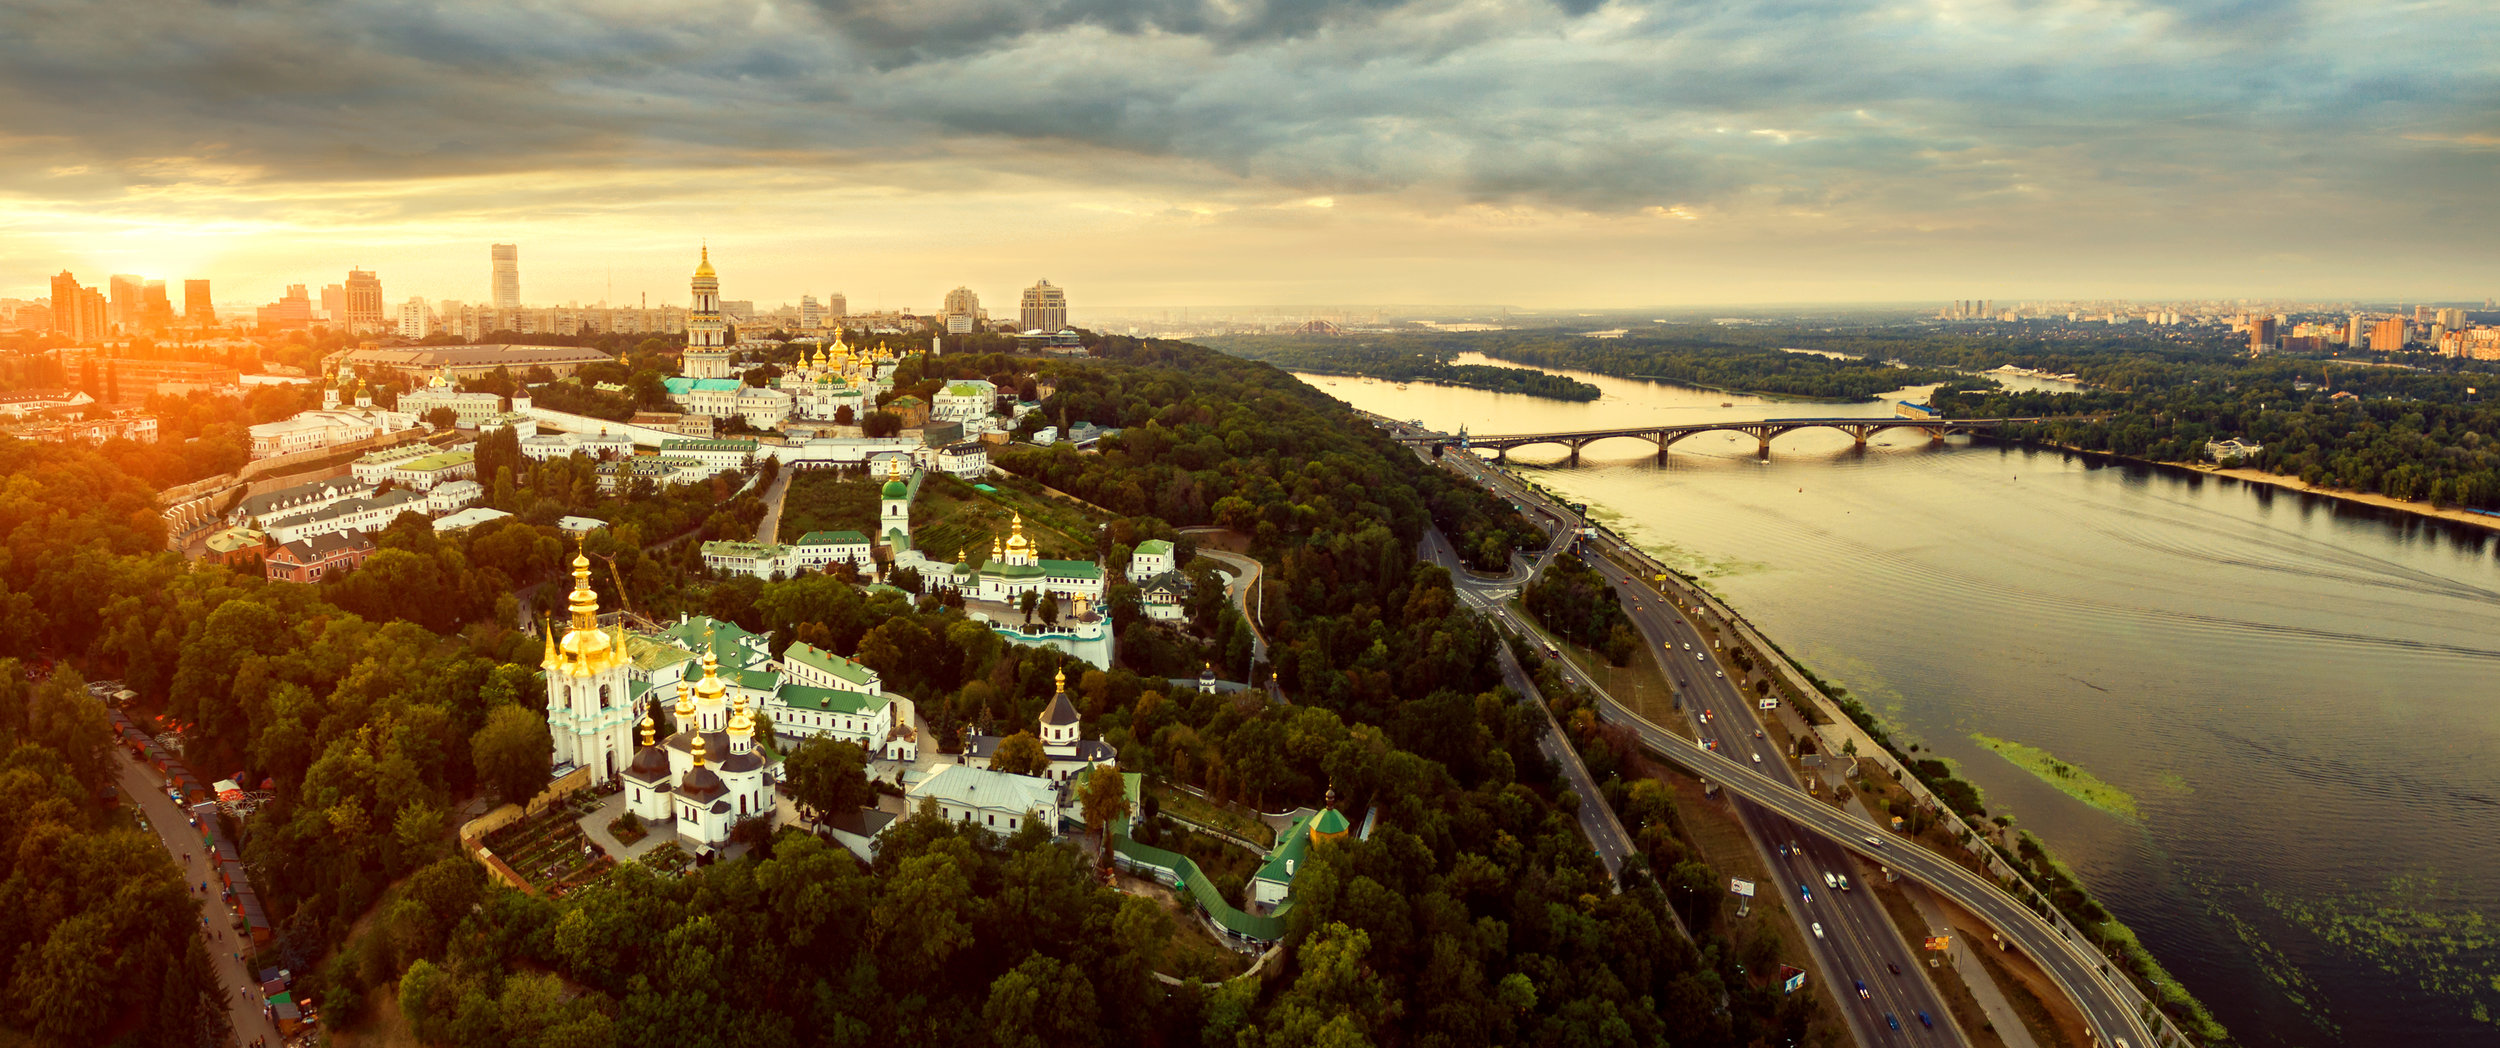 Kiev Aerial View of the city